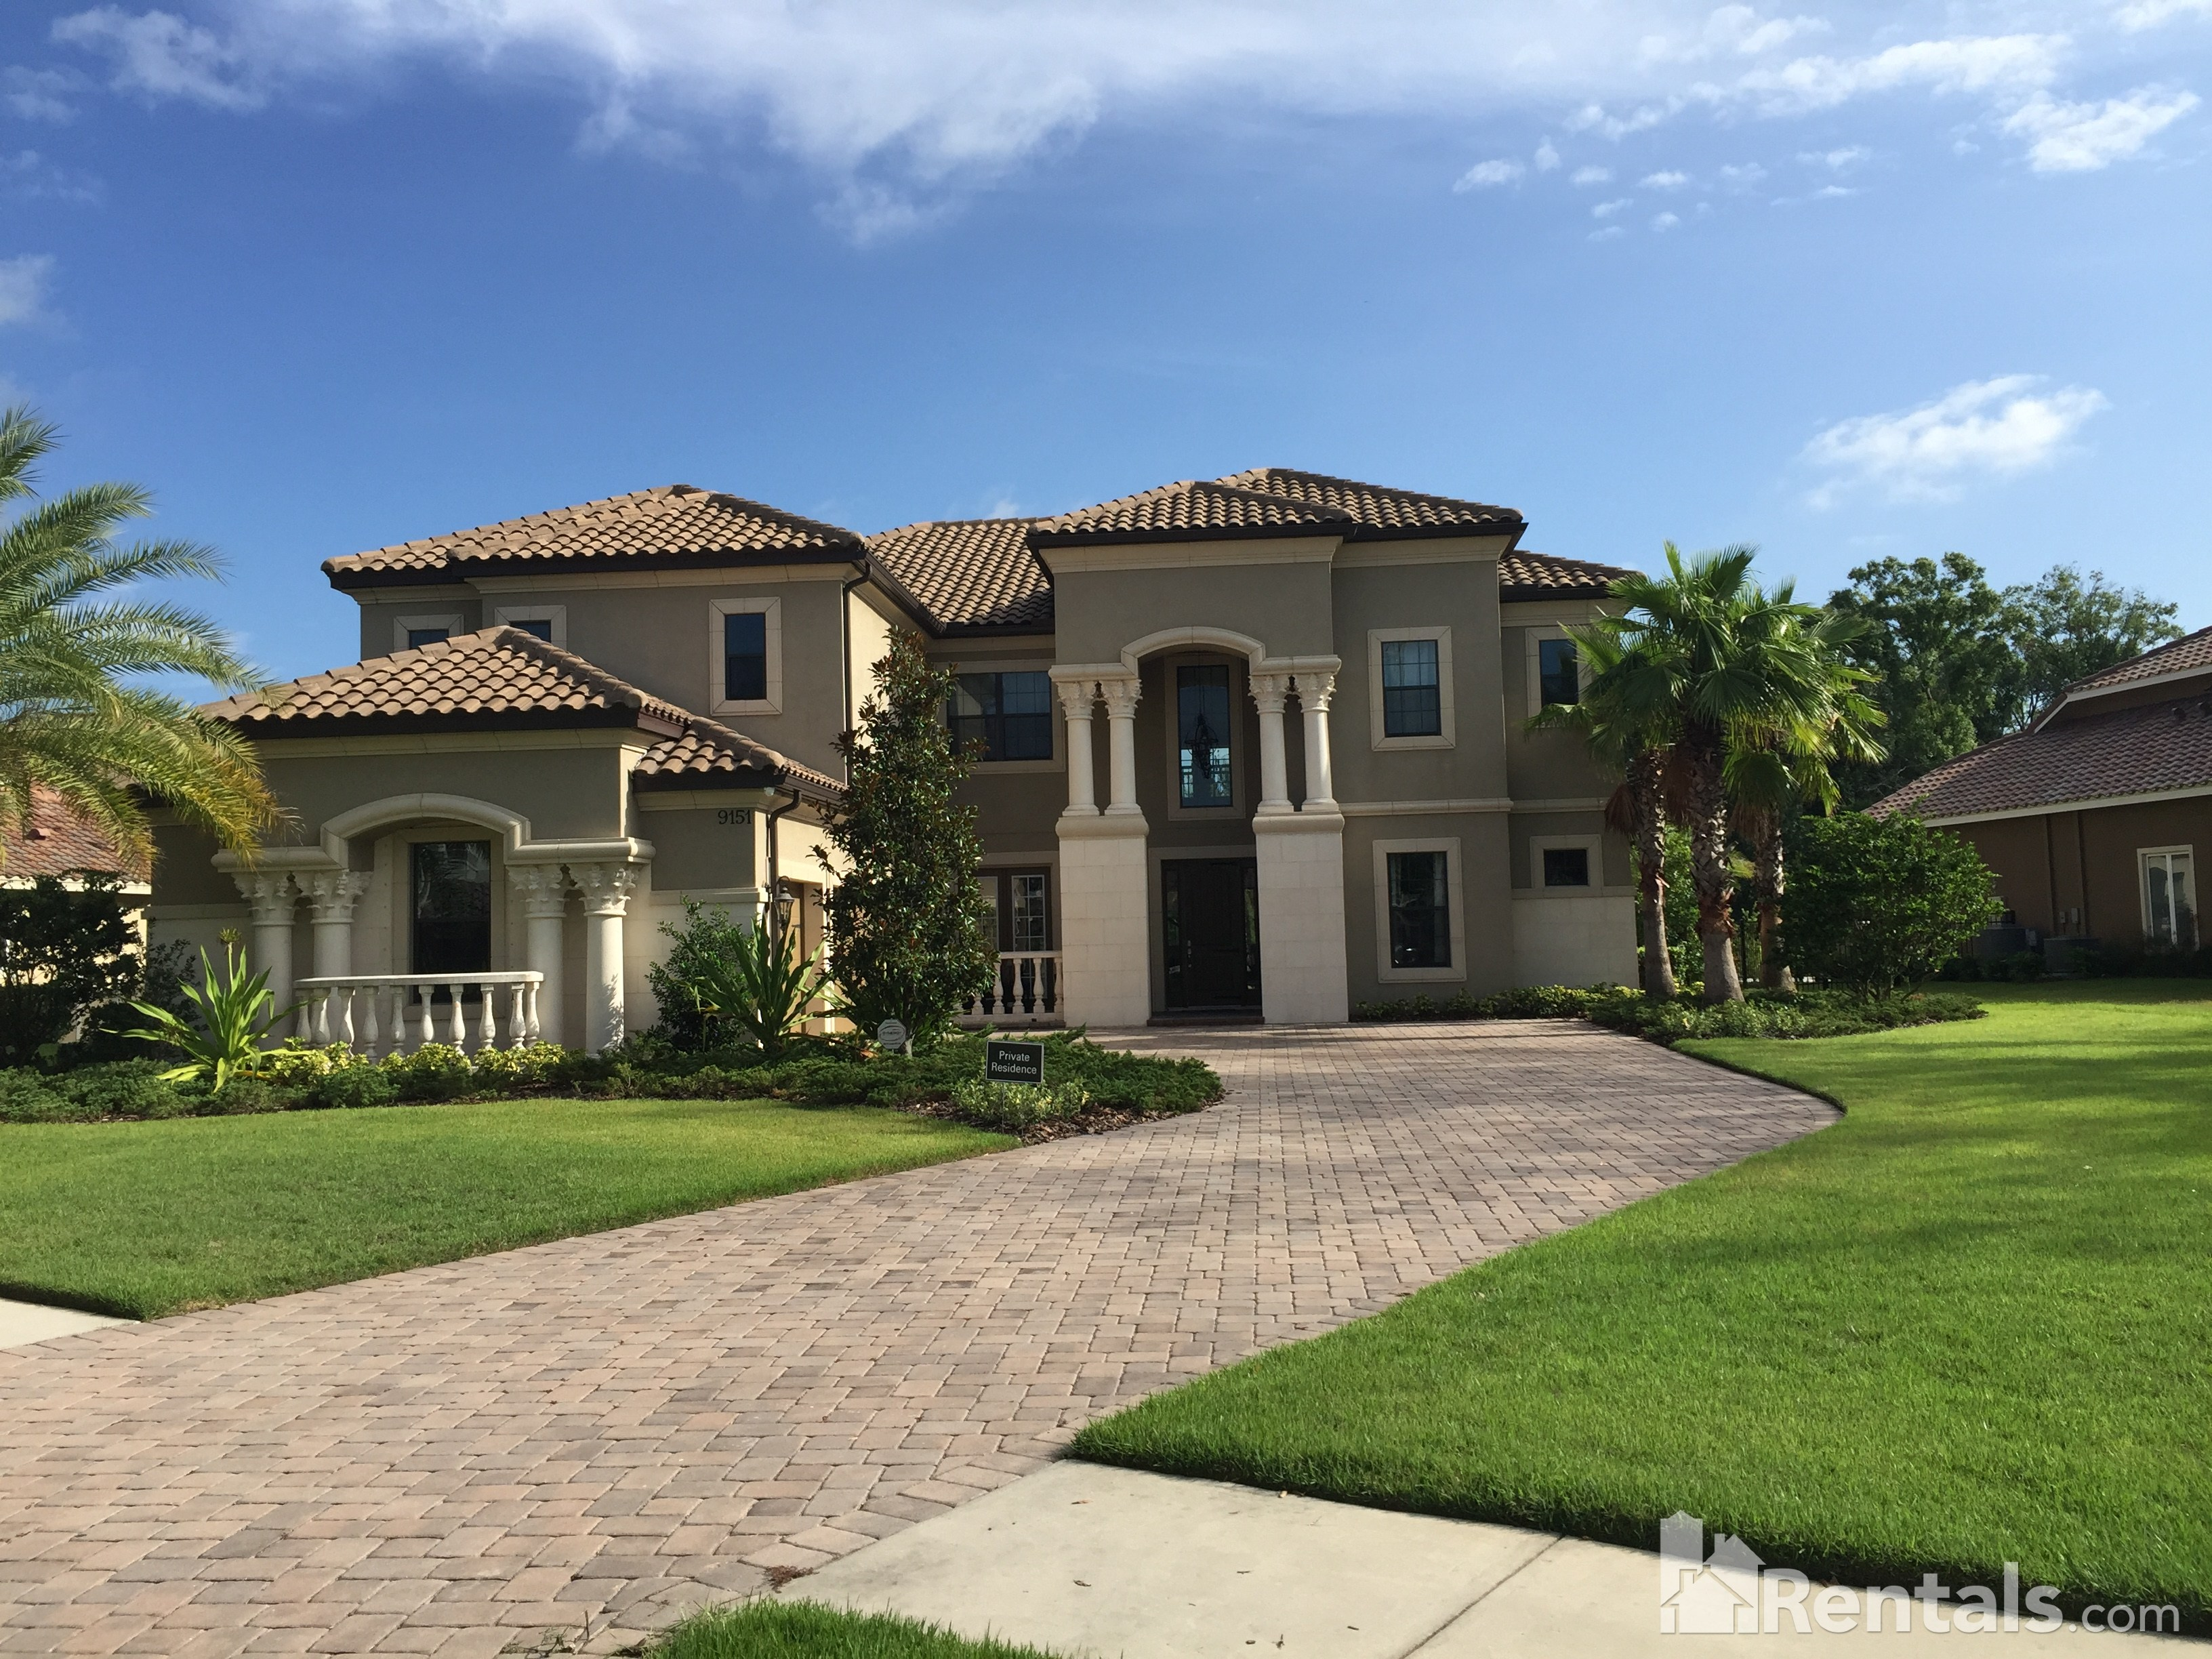 House For Rent In Florida 28 Images Nice 4 Bedroom